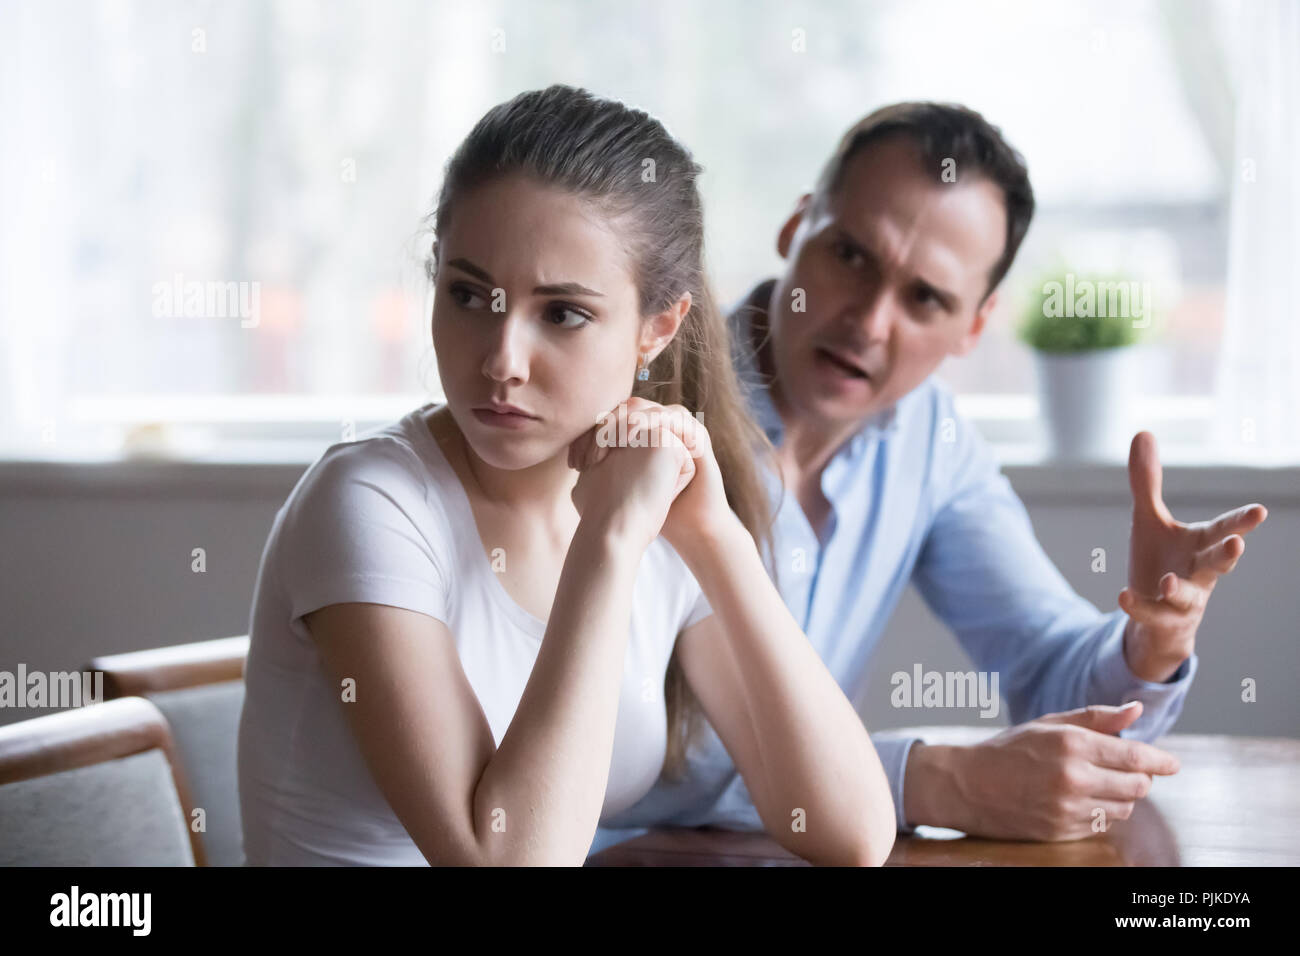 Mad man screaming or lecturing offended young lover - Stock Image